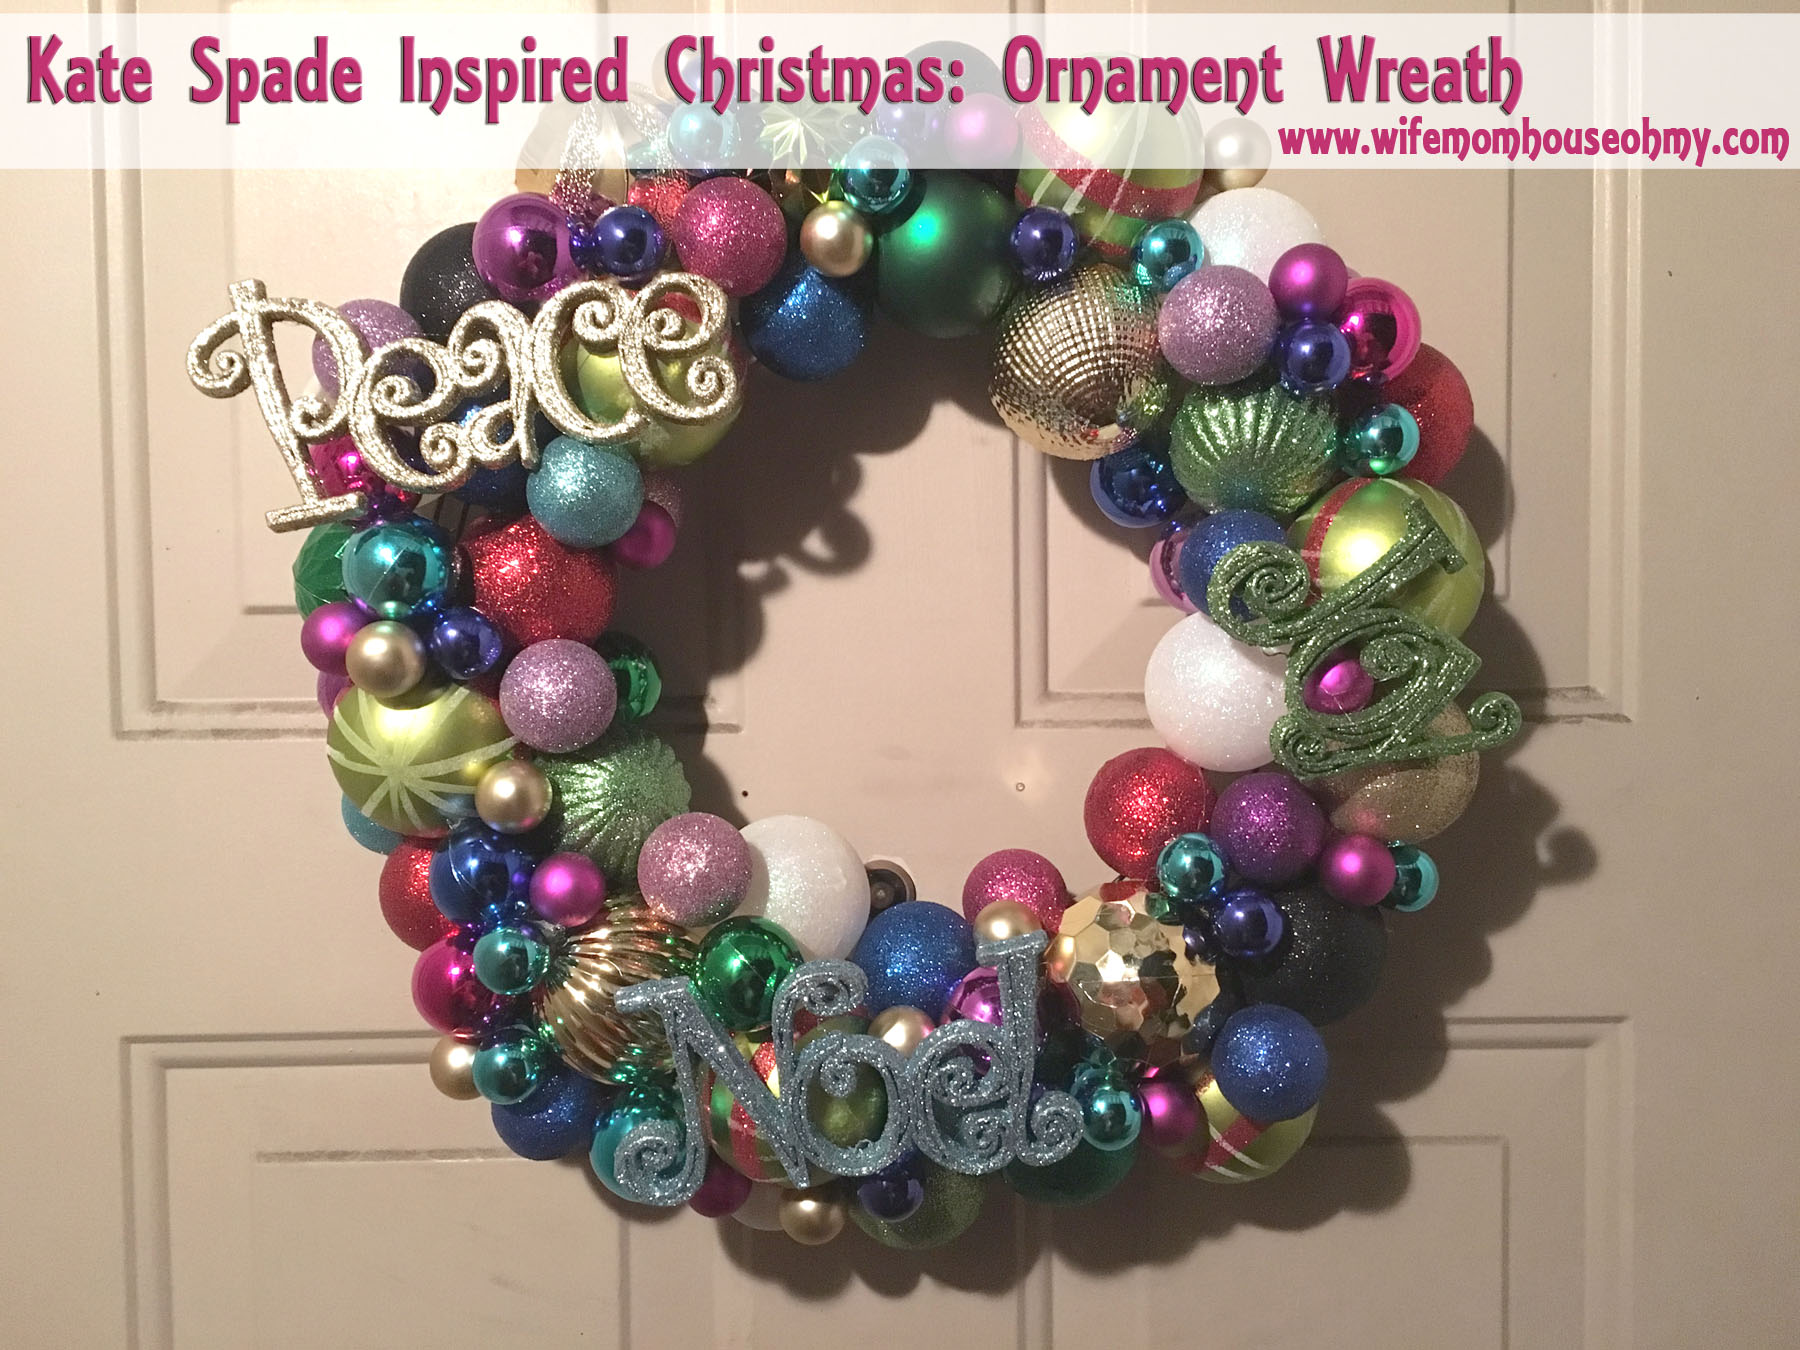 Kate Spade Inspired Christmas: Ornament Wreath |